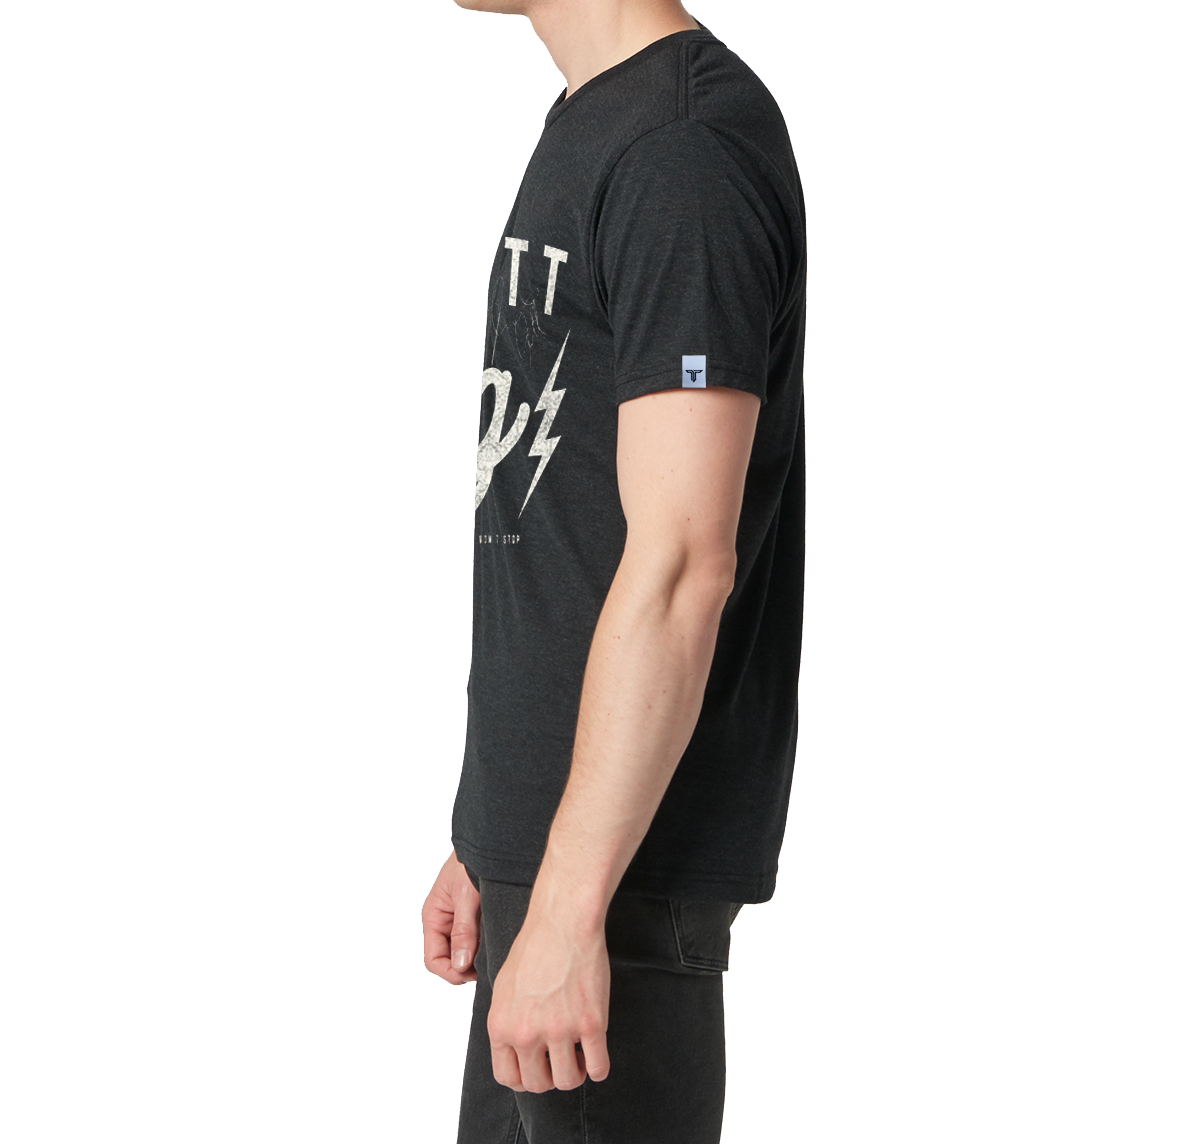 Gantt Striker Short Sleeve Tee - Black